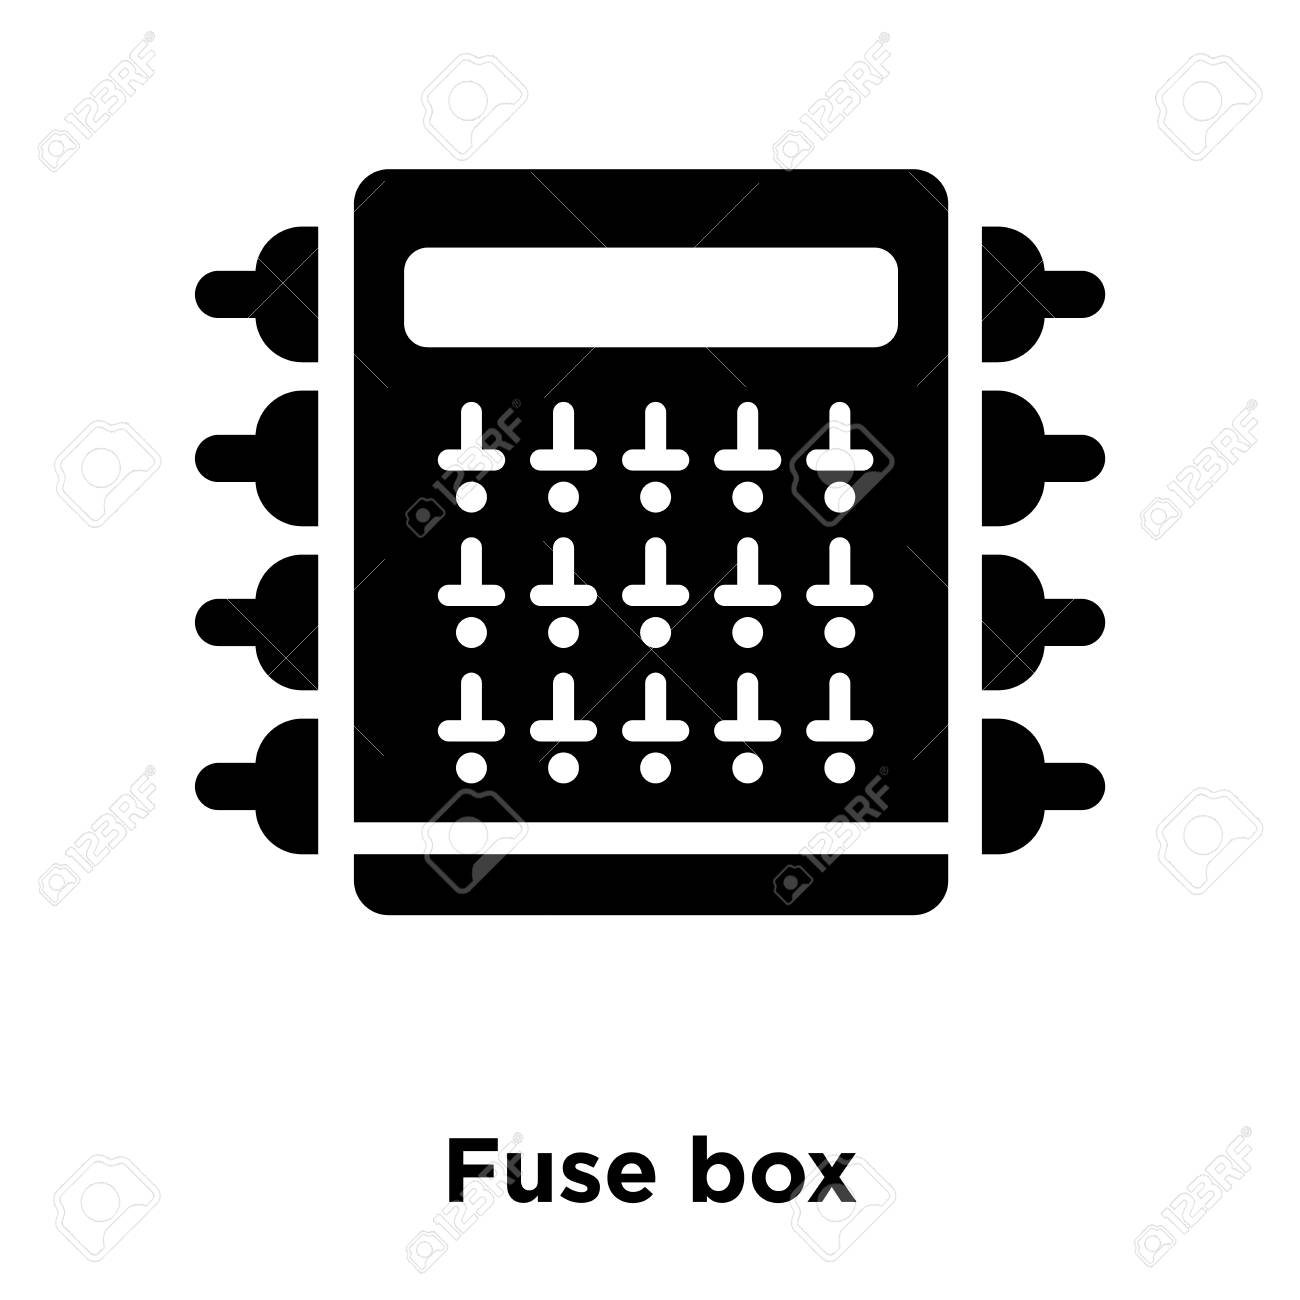 hight resolution of fuse box icon vector isolated on white background logo concept bmw fuse box icons fuse box icons